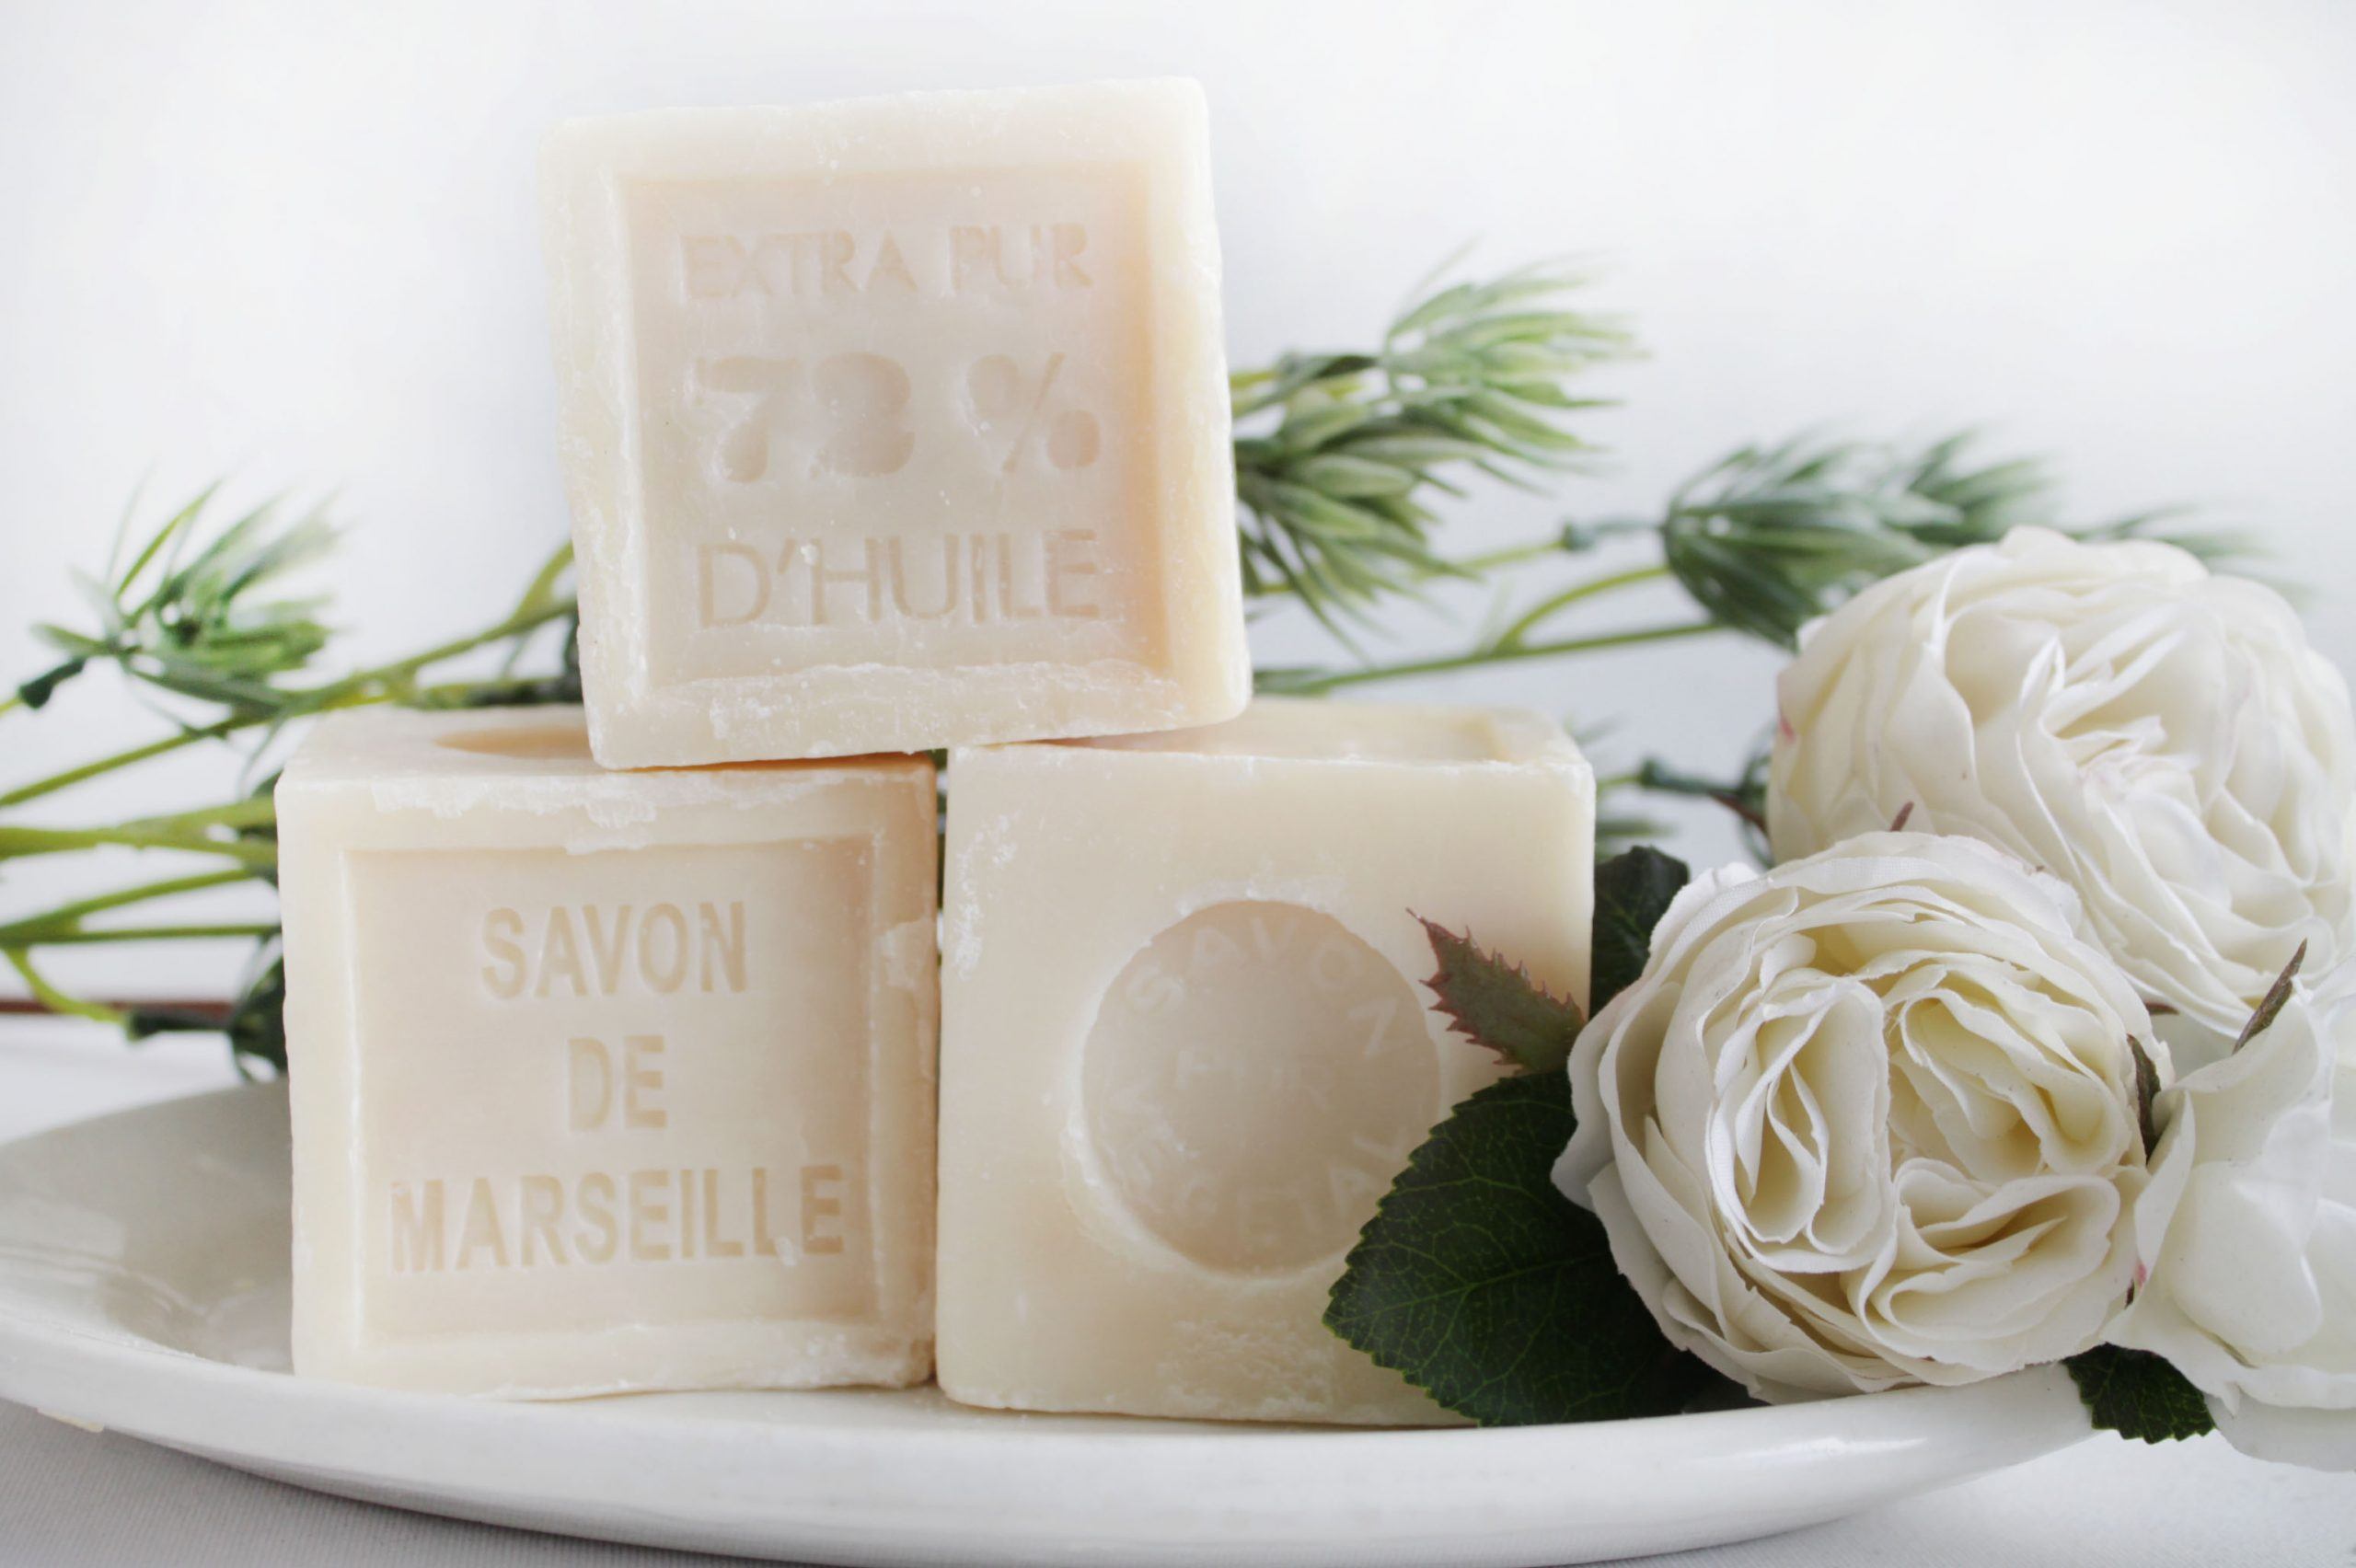 Original Savon de Marseille Olive Oil Soap Bar